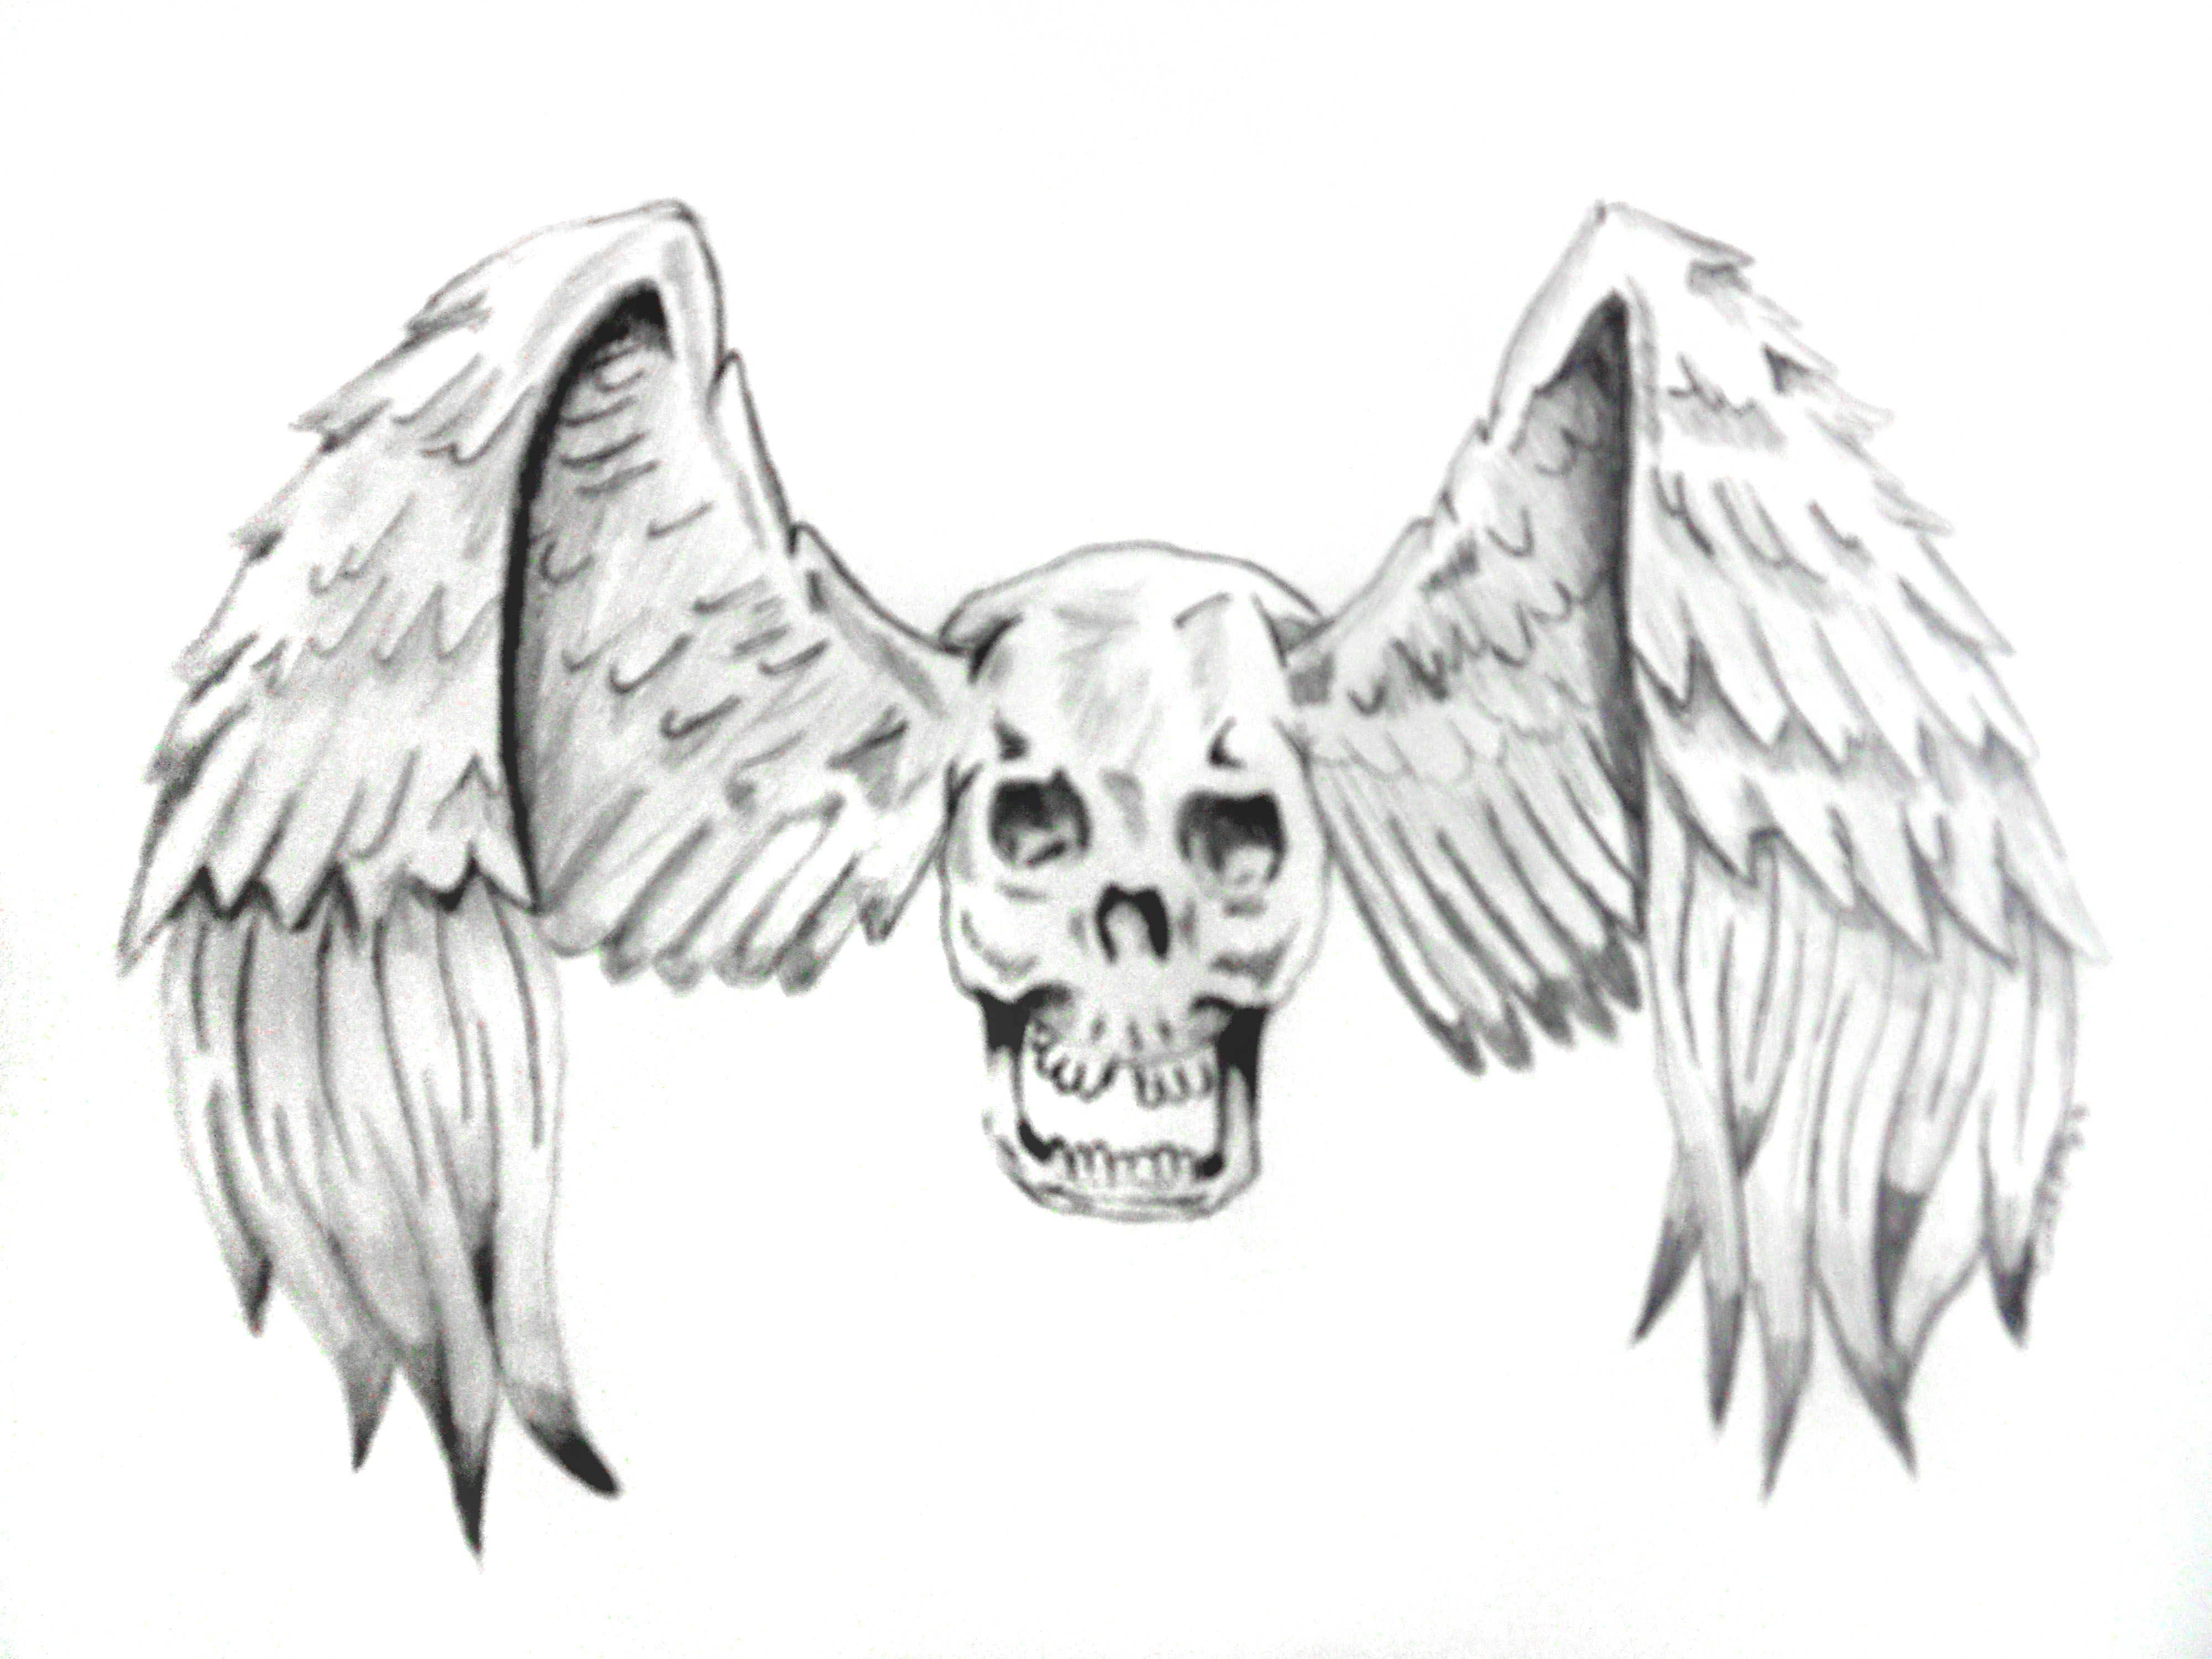 Love to draw tattoos, this is prob one of my favourites